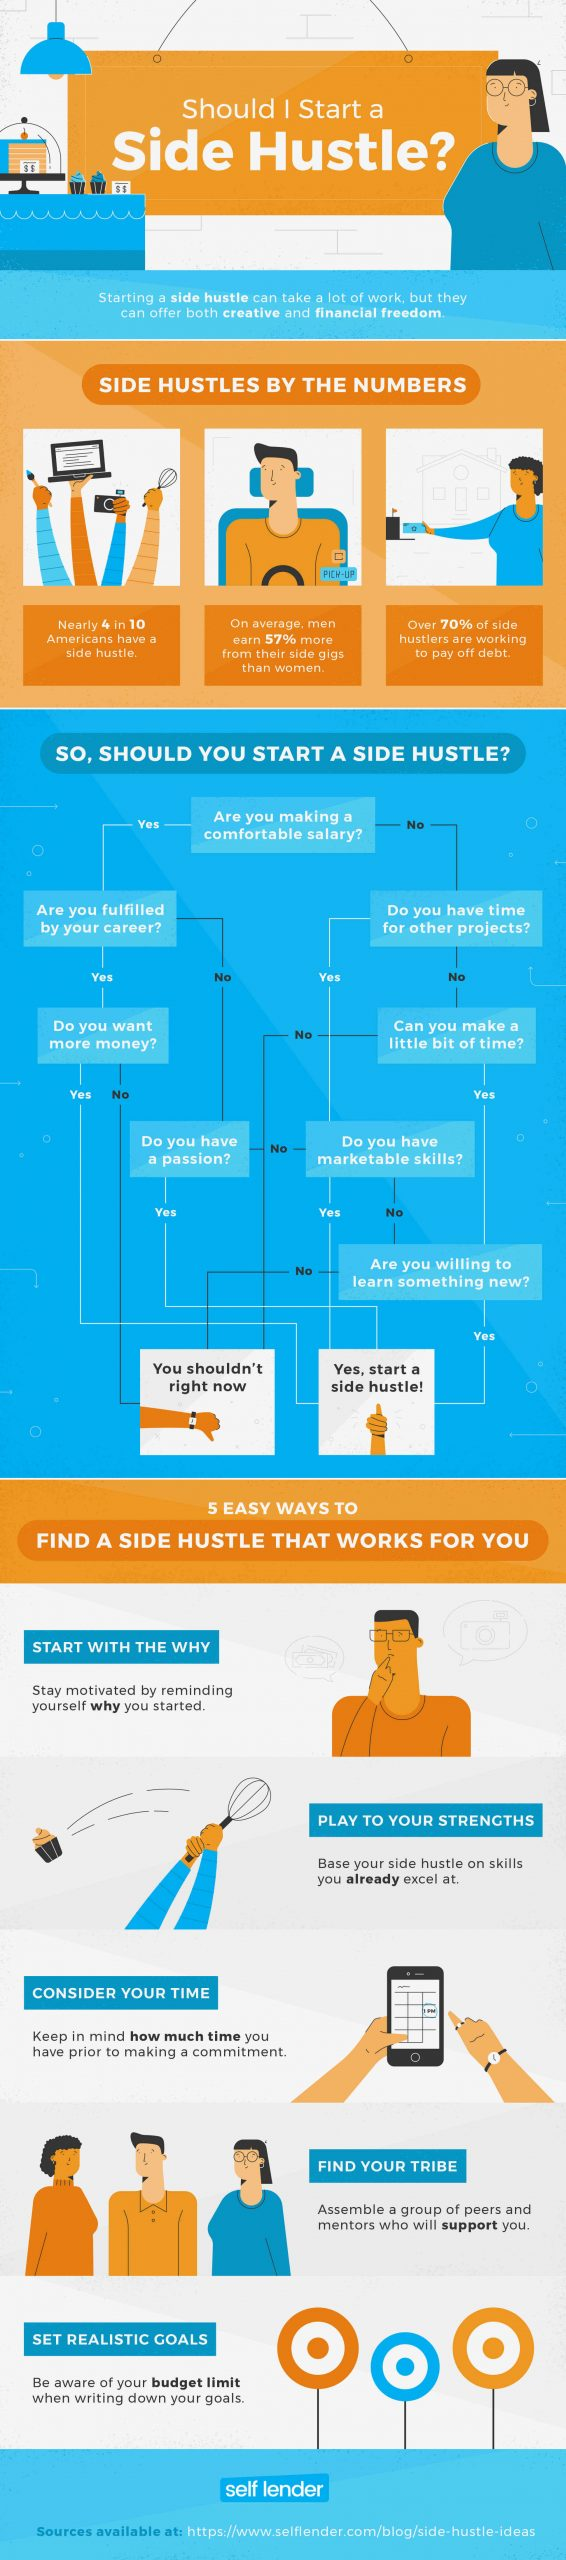 Start A Side Hustle Infographic compressed